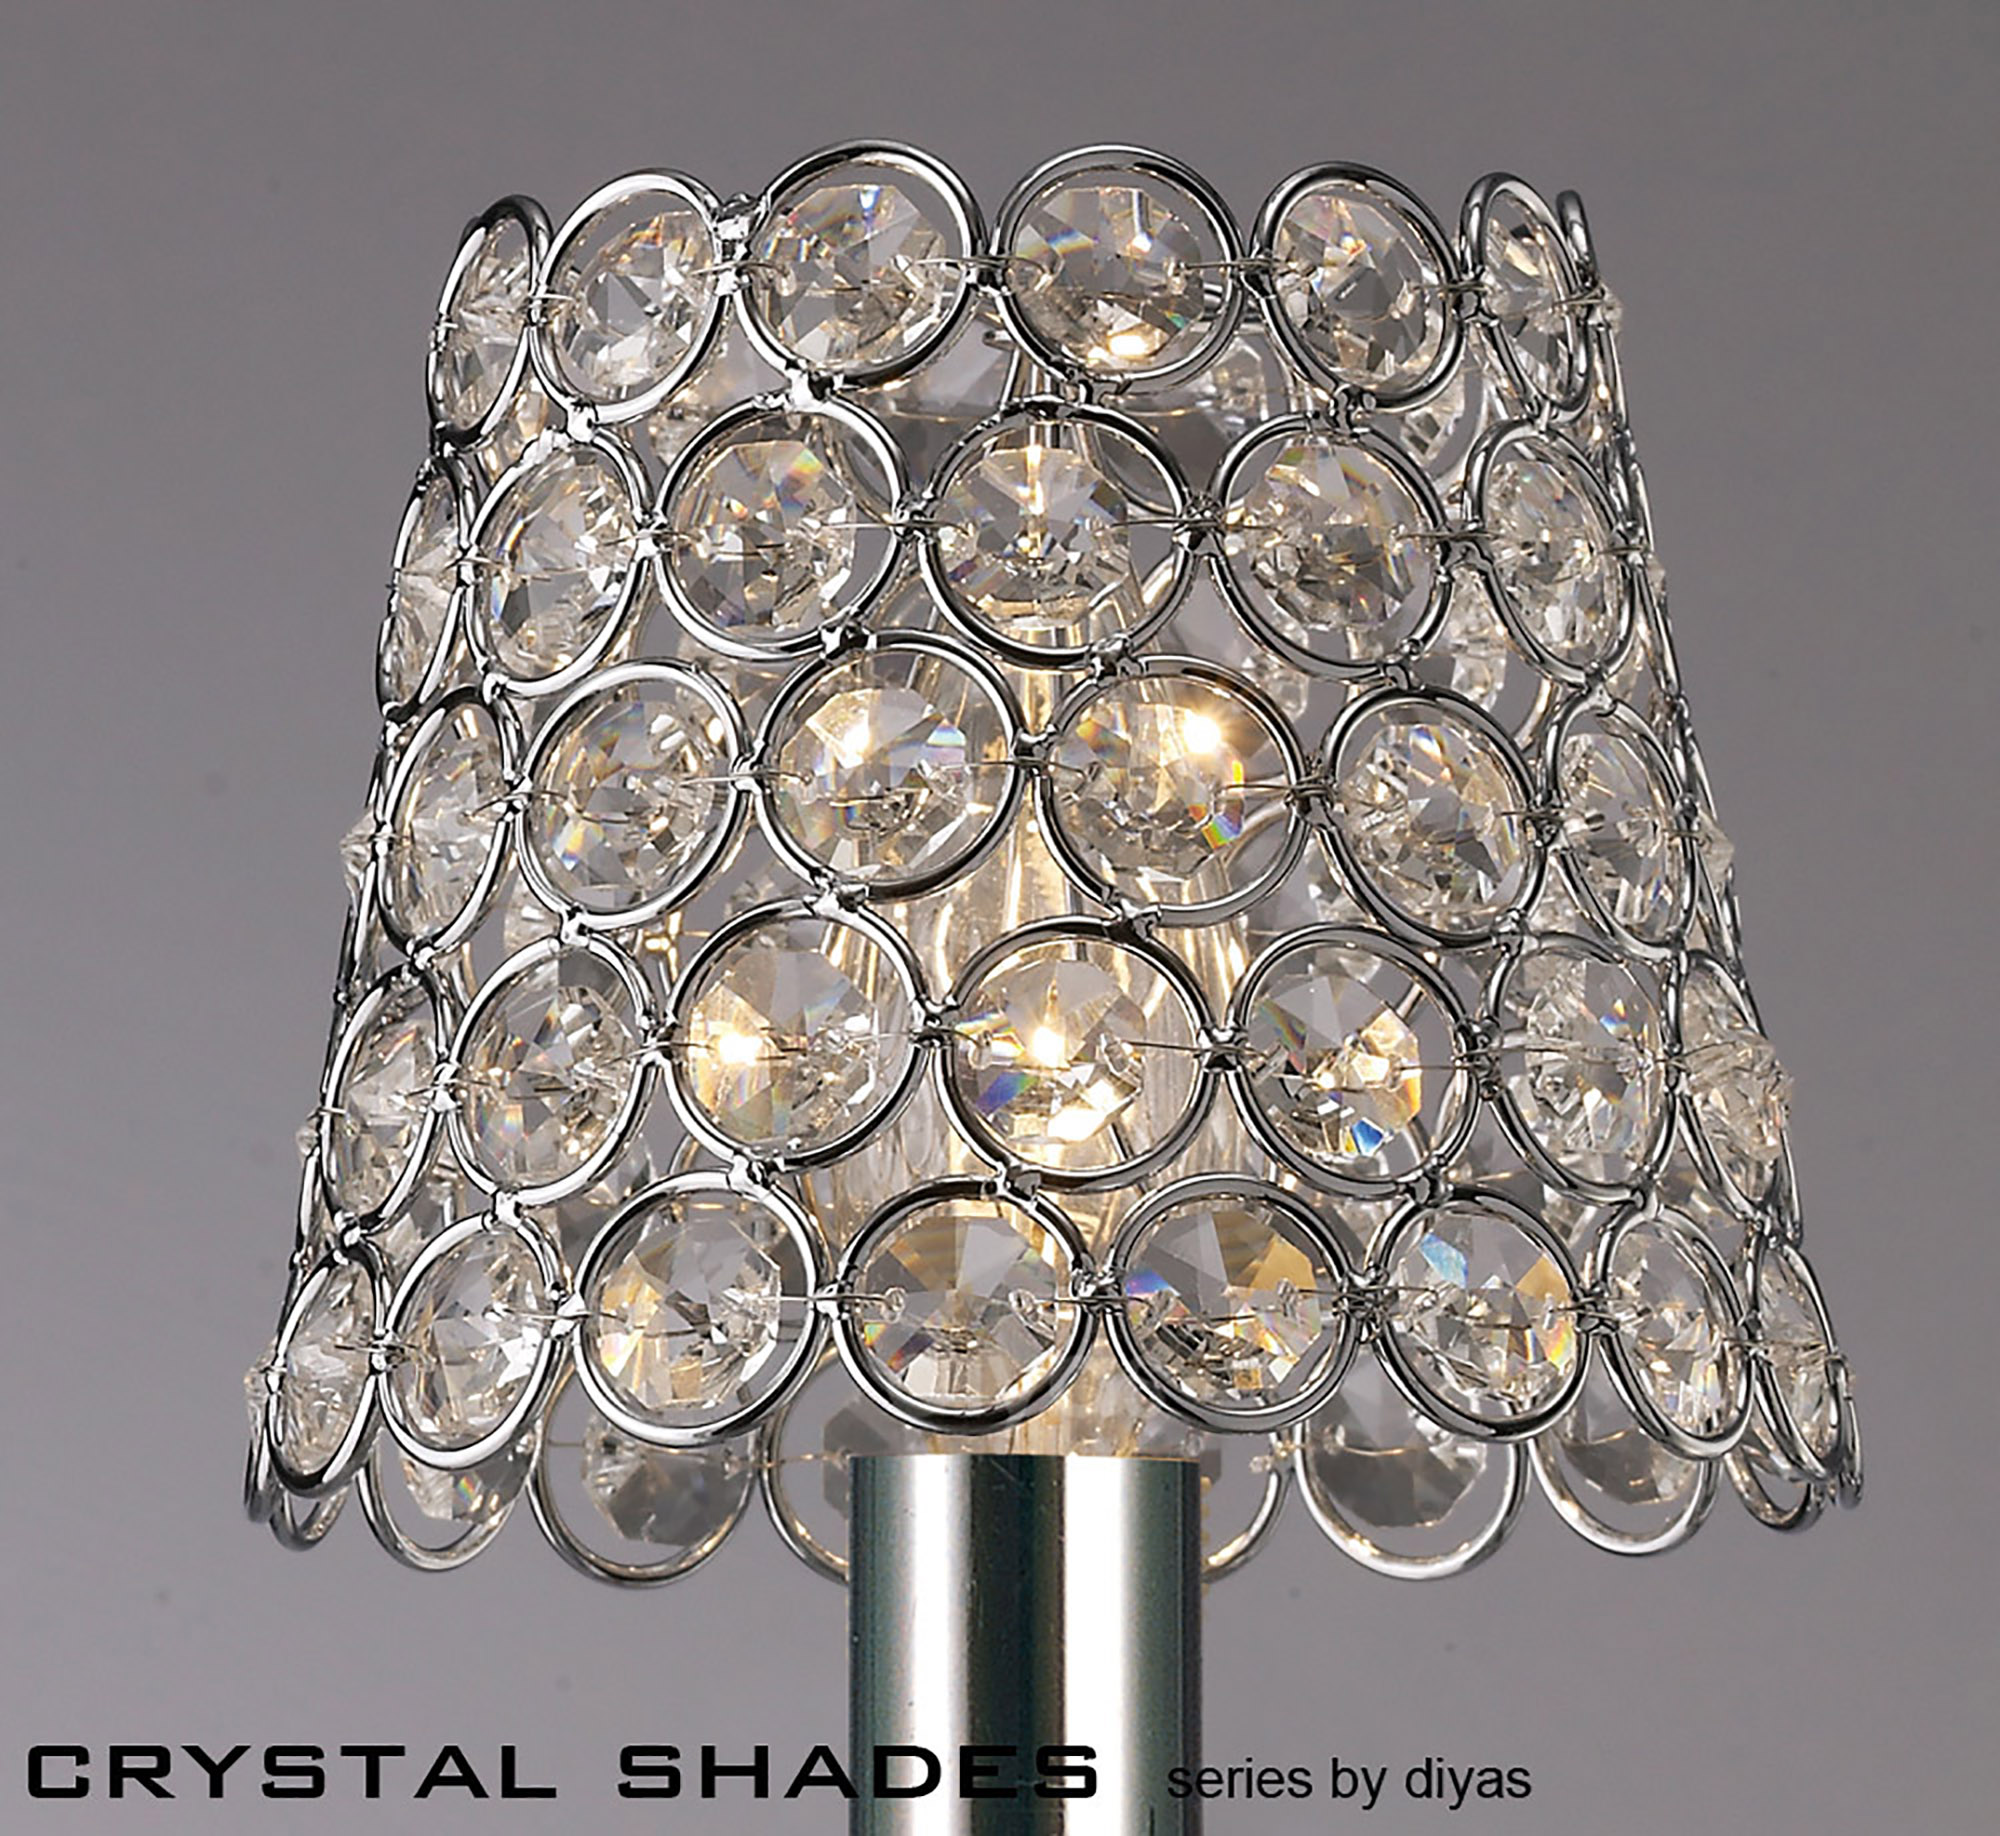 Crystal Ring Shade Glass Crystal Shades Diyas Clip-On Shades